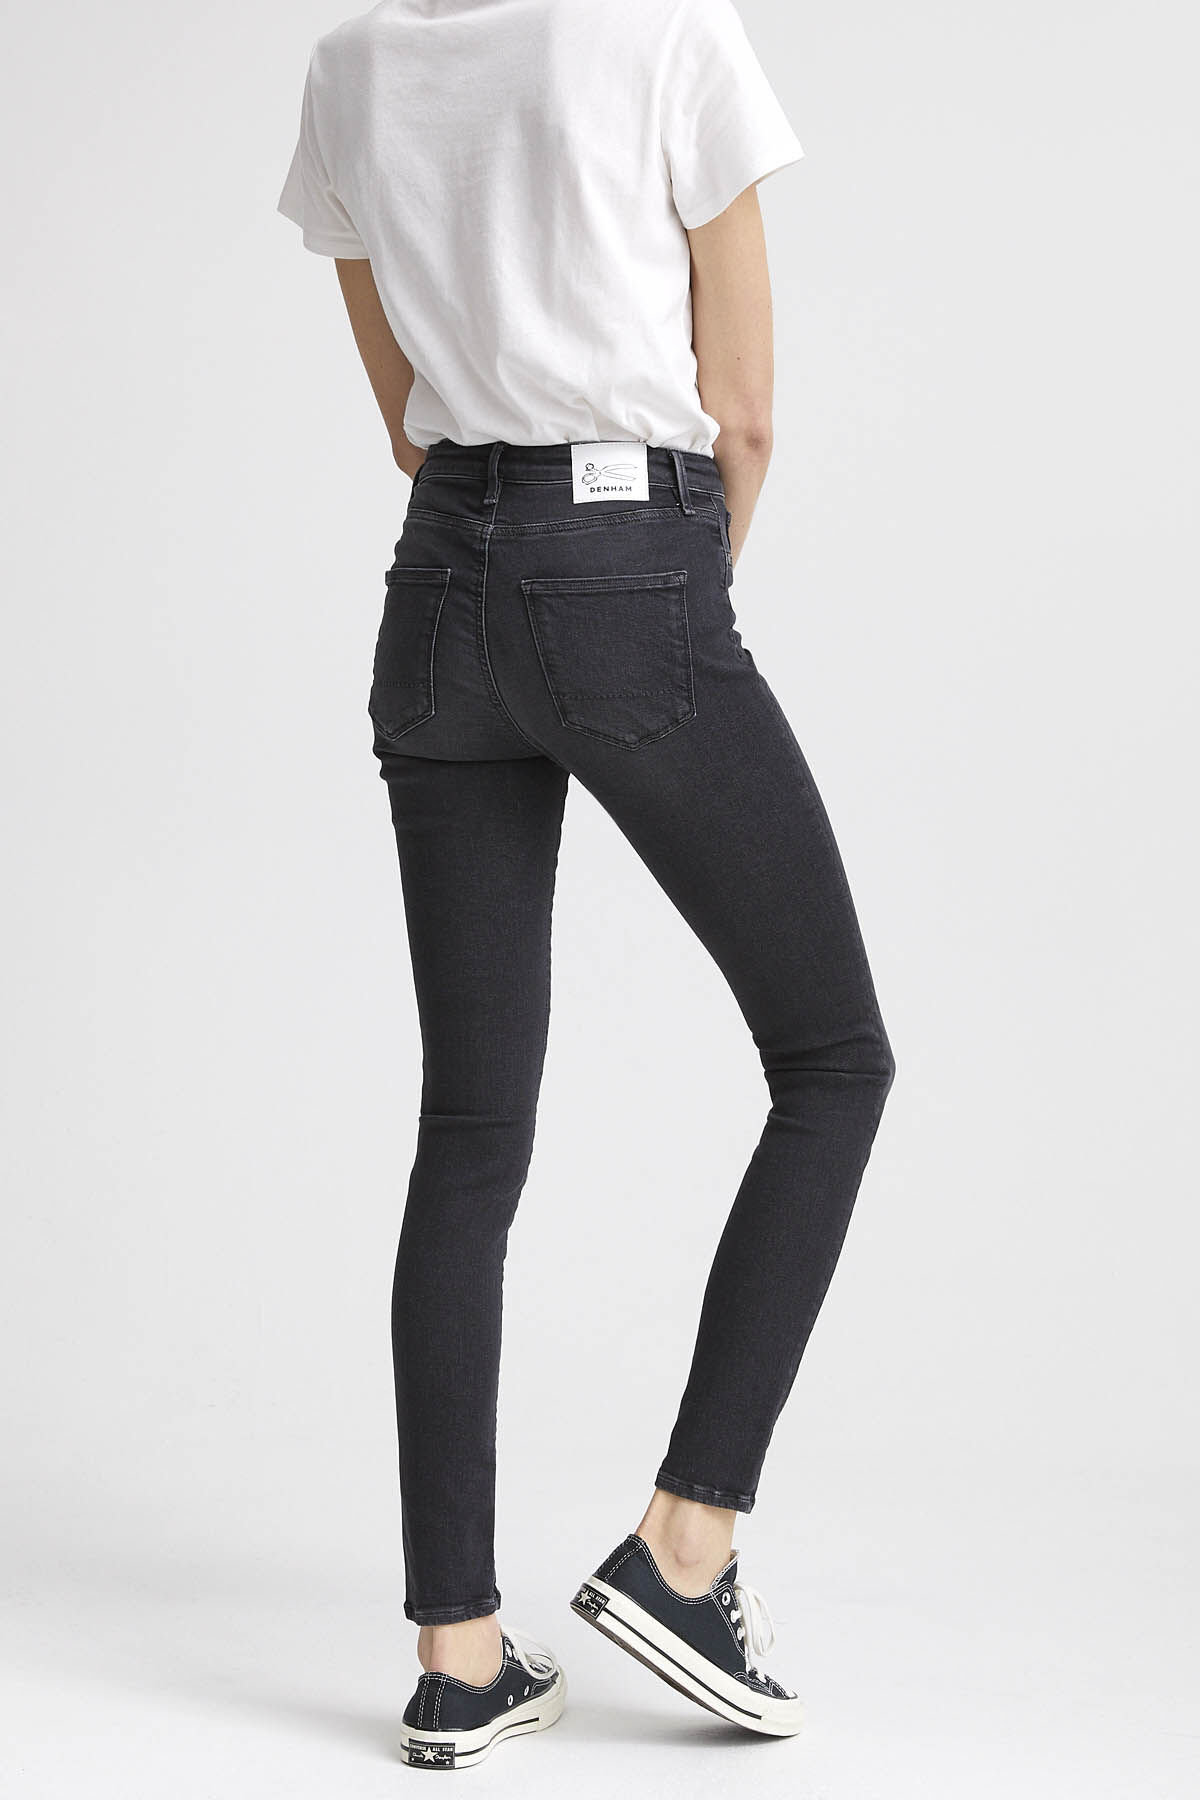 NEEDLE Indigo Dipped Denim - High-rise, Skinny Fit